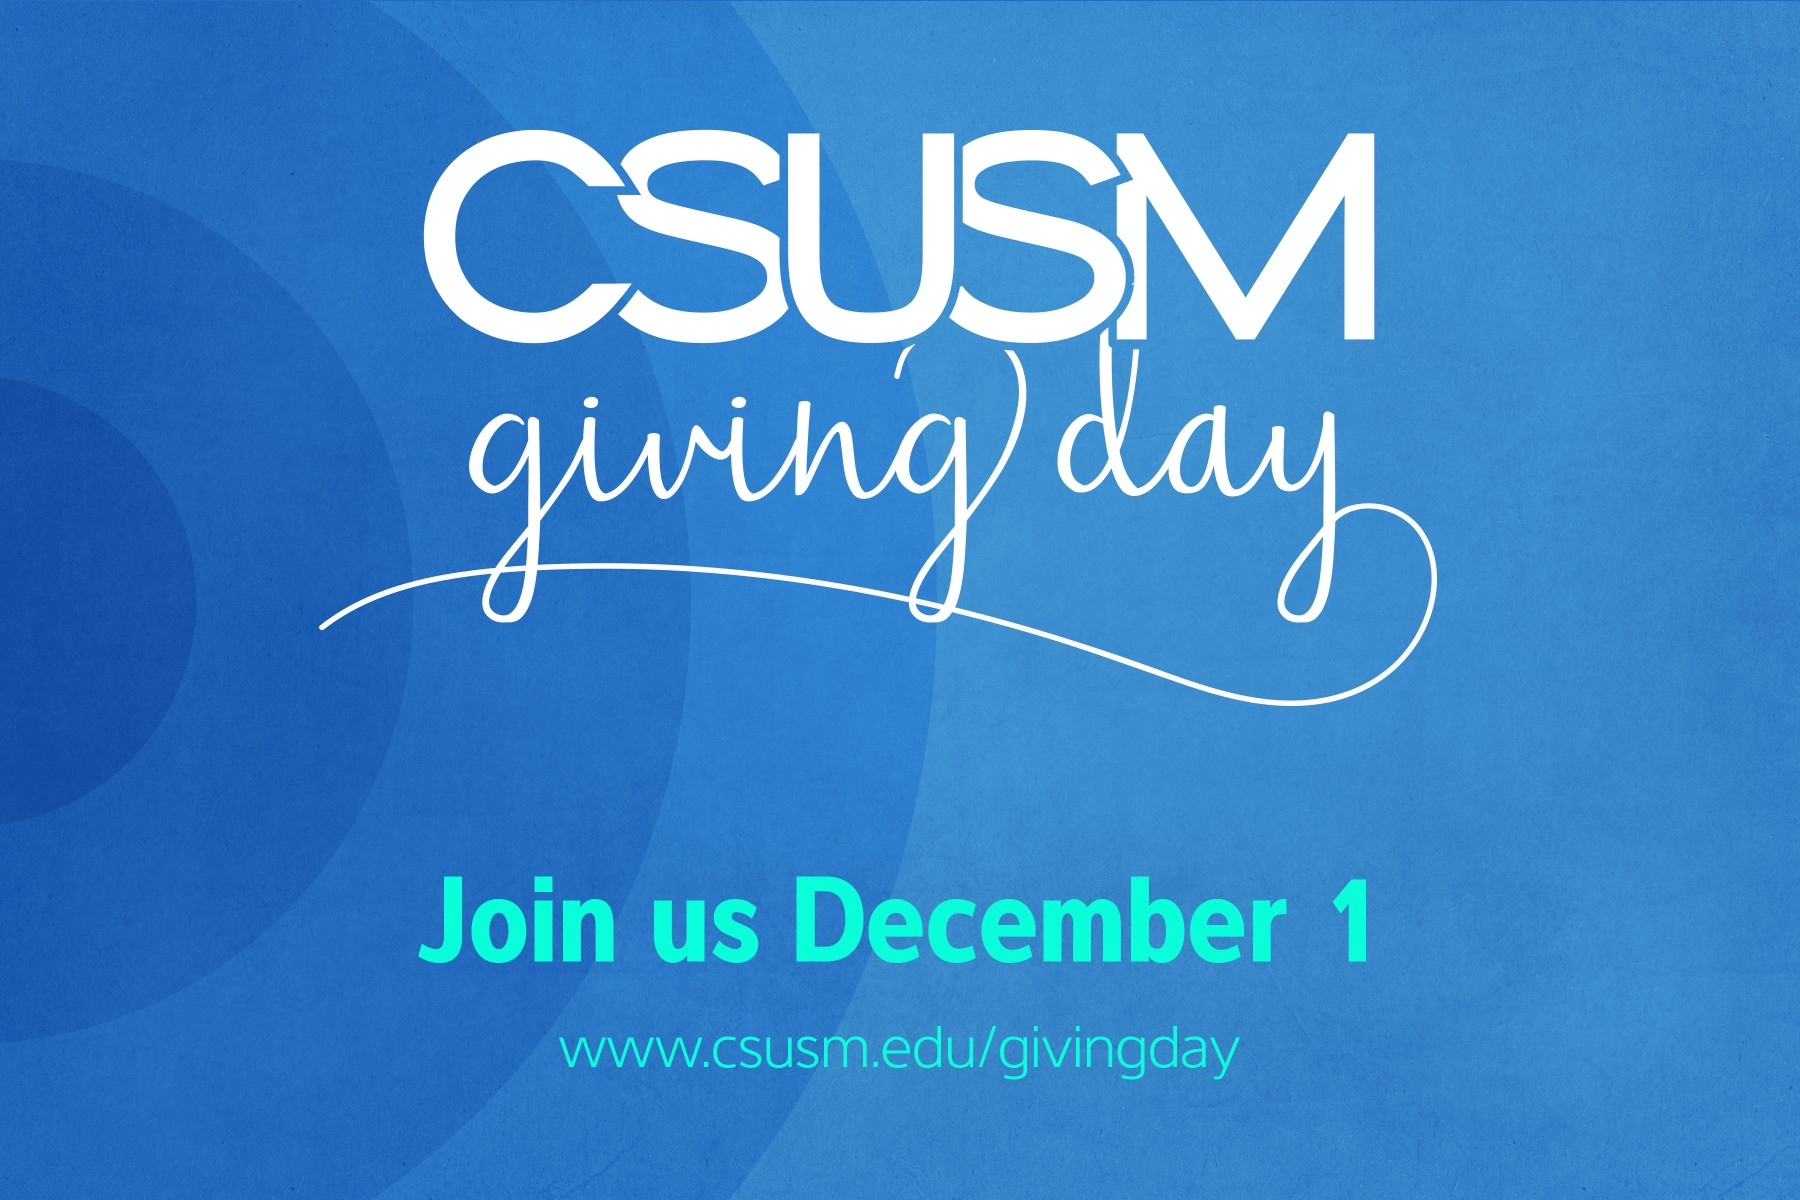 CSUSM Giving Day | csusm.edu/givingday